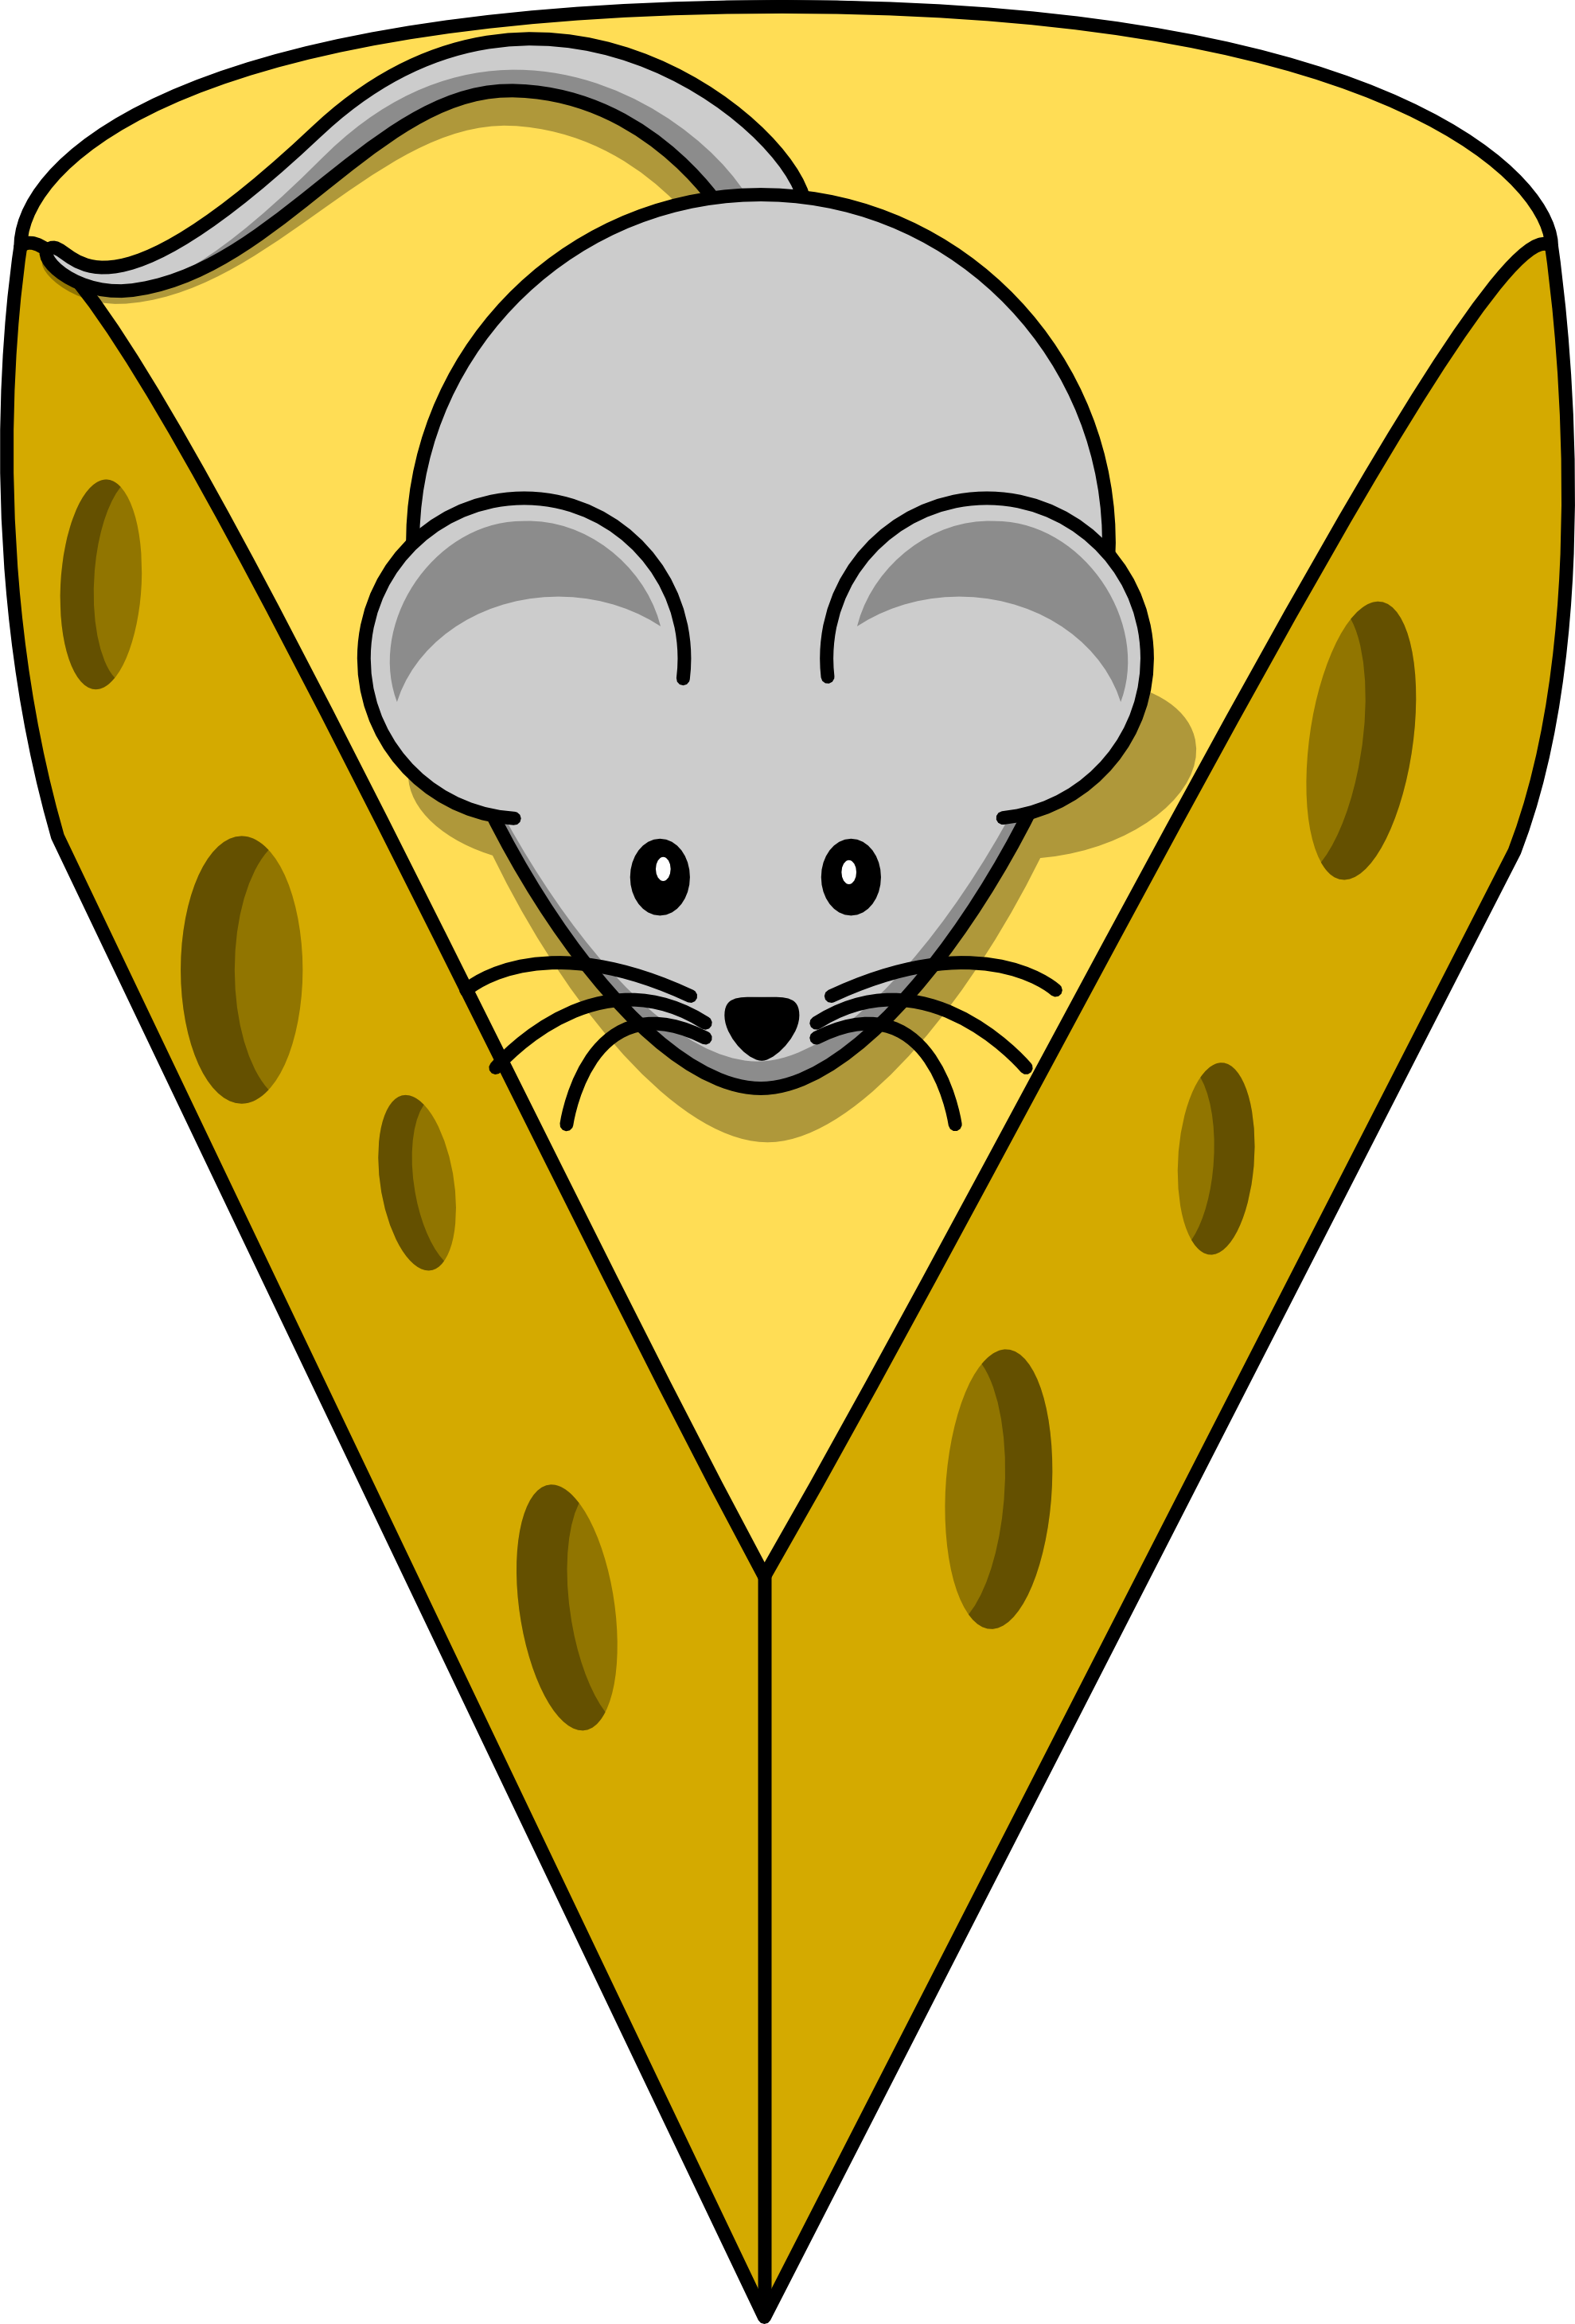 image Mouse panda free images. Cheese clipart cheese man.